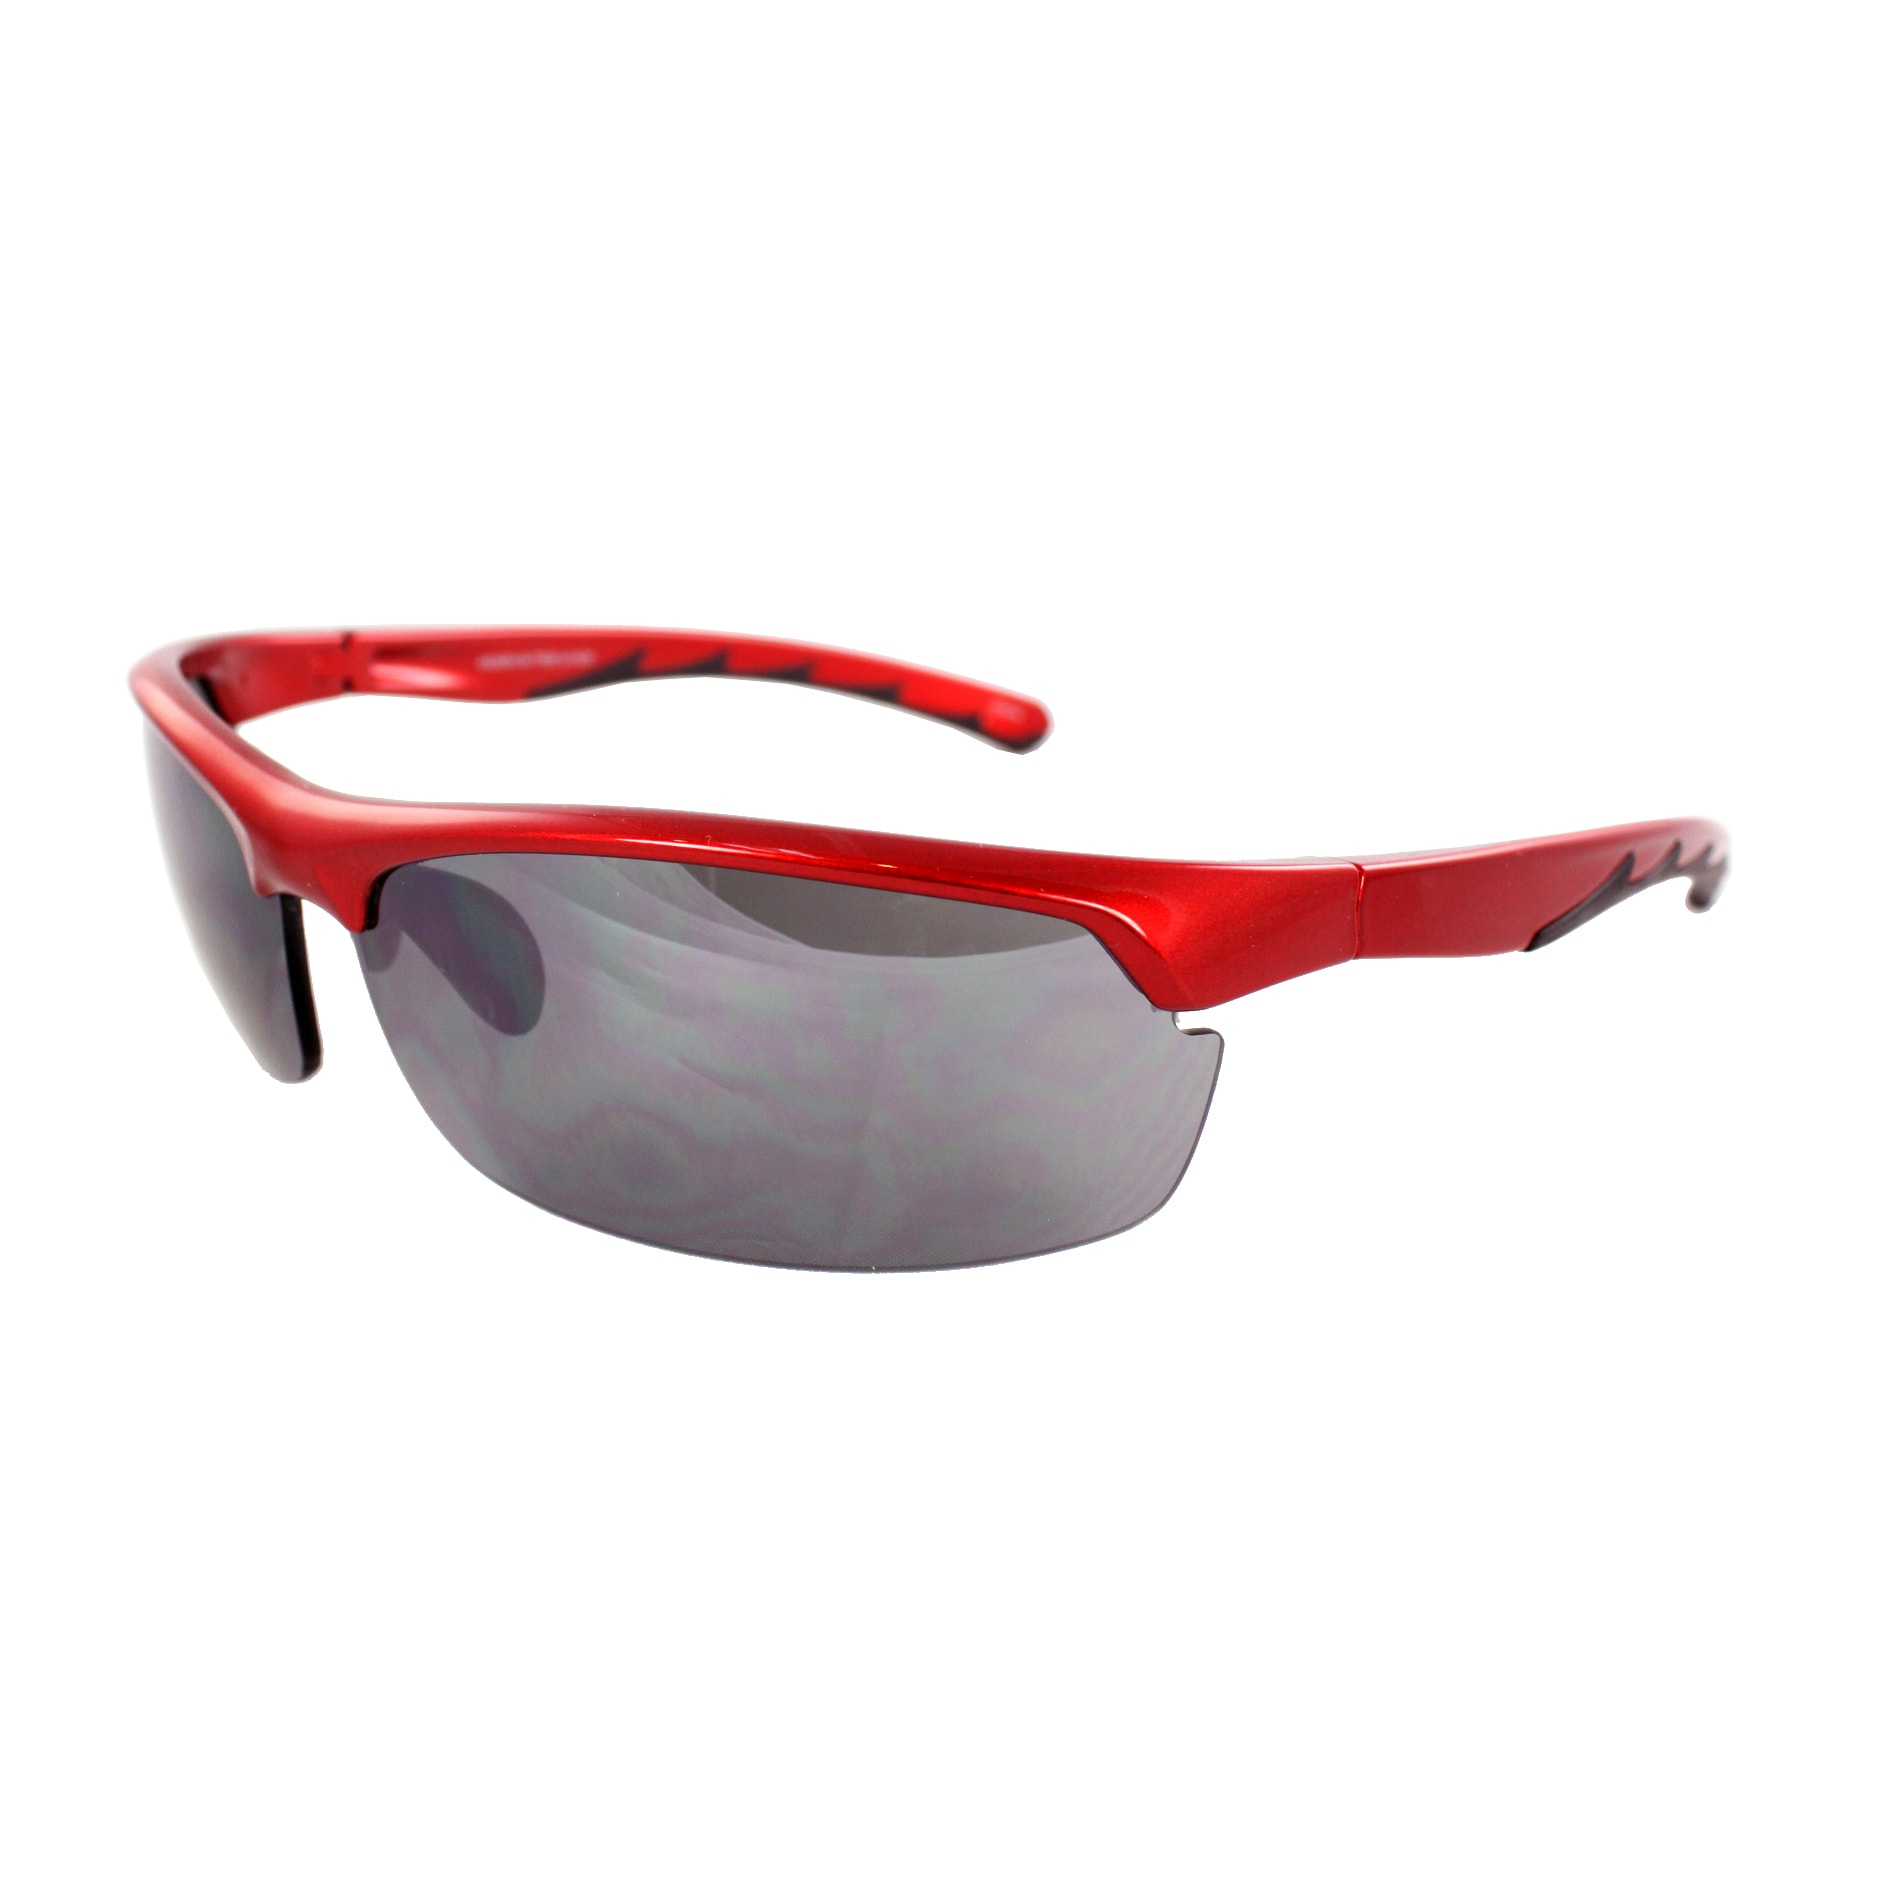 Men's 4926RV-RDBKSM Red Semi-rimless Wrap Sunglasses